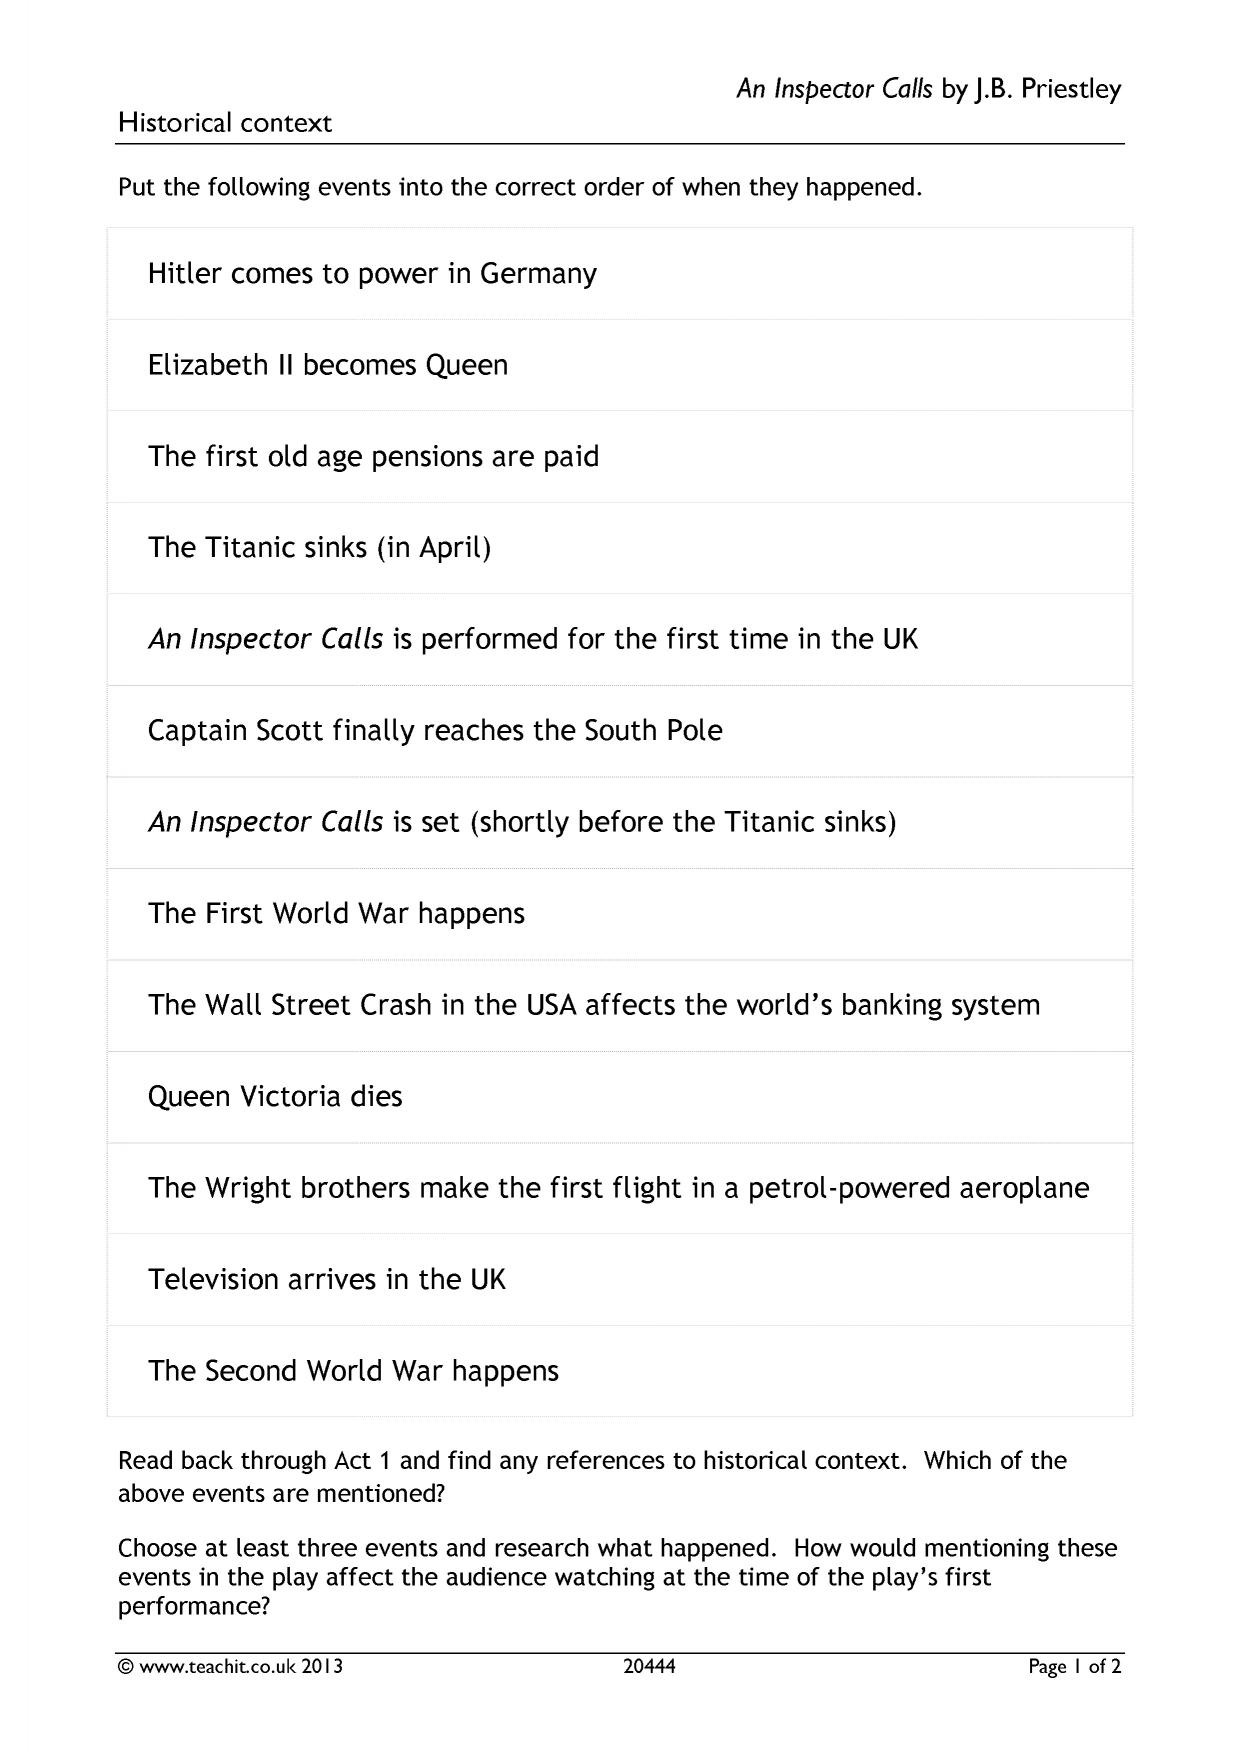 inspector calls essay introduction A summary of act three in j b priestley's an inspector calls perfect for acing essays, tests, and quizzes, as well as for writing lesson plans sparknotes.